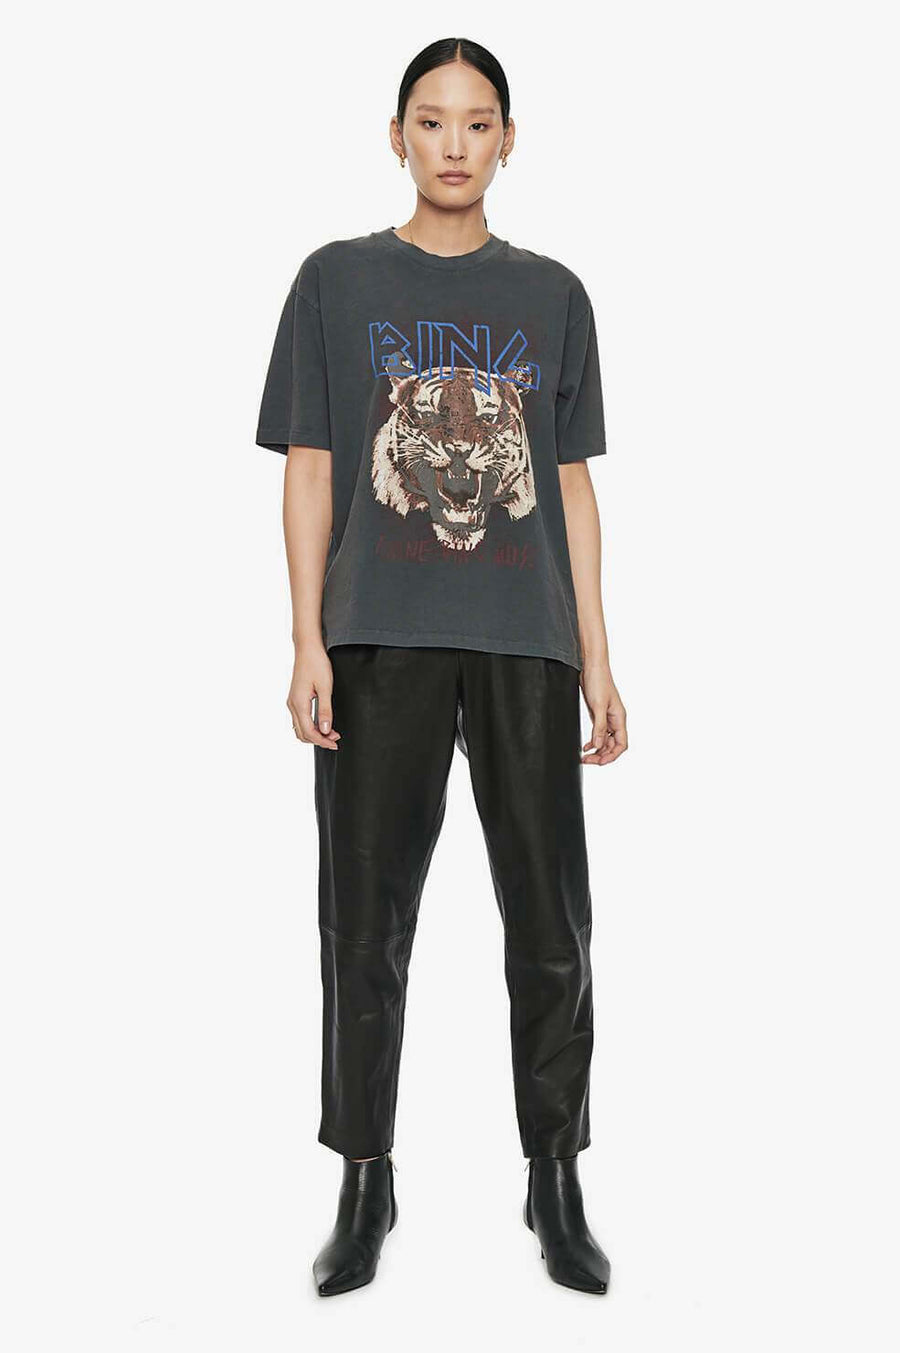 Anine Bing Tiger T-Shirt from The New Trend